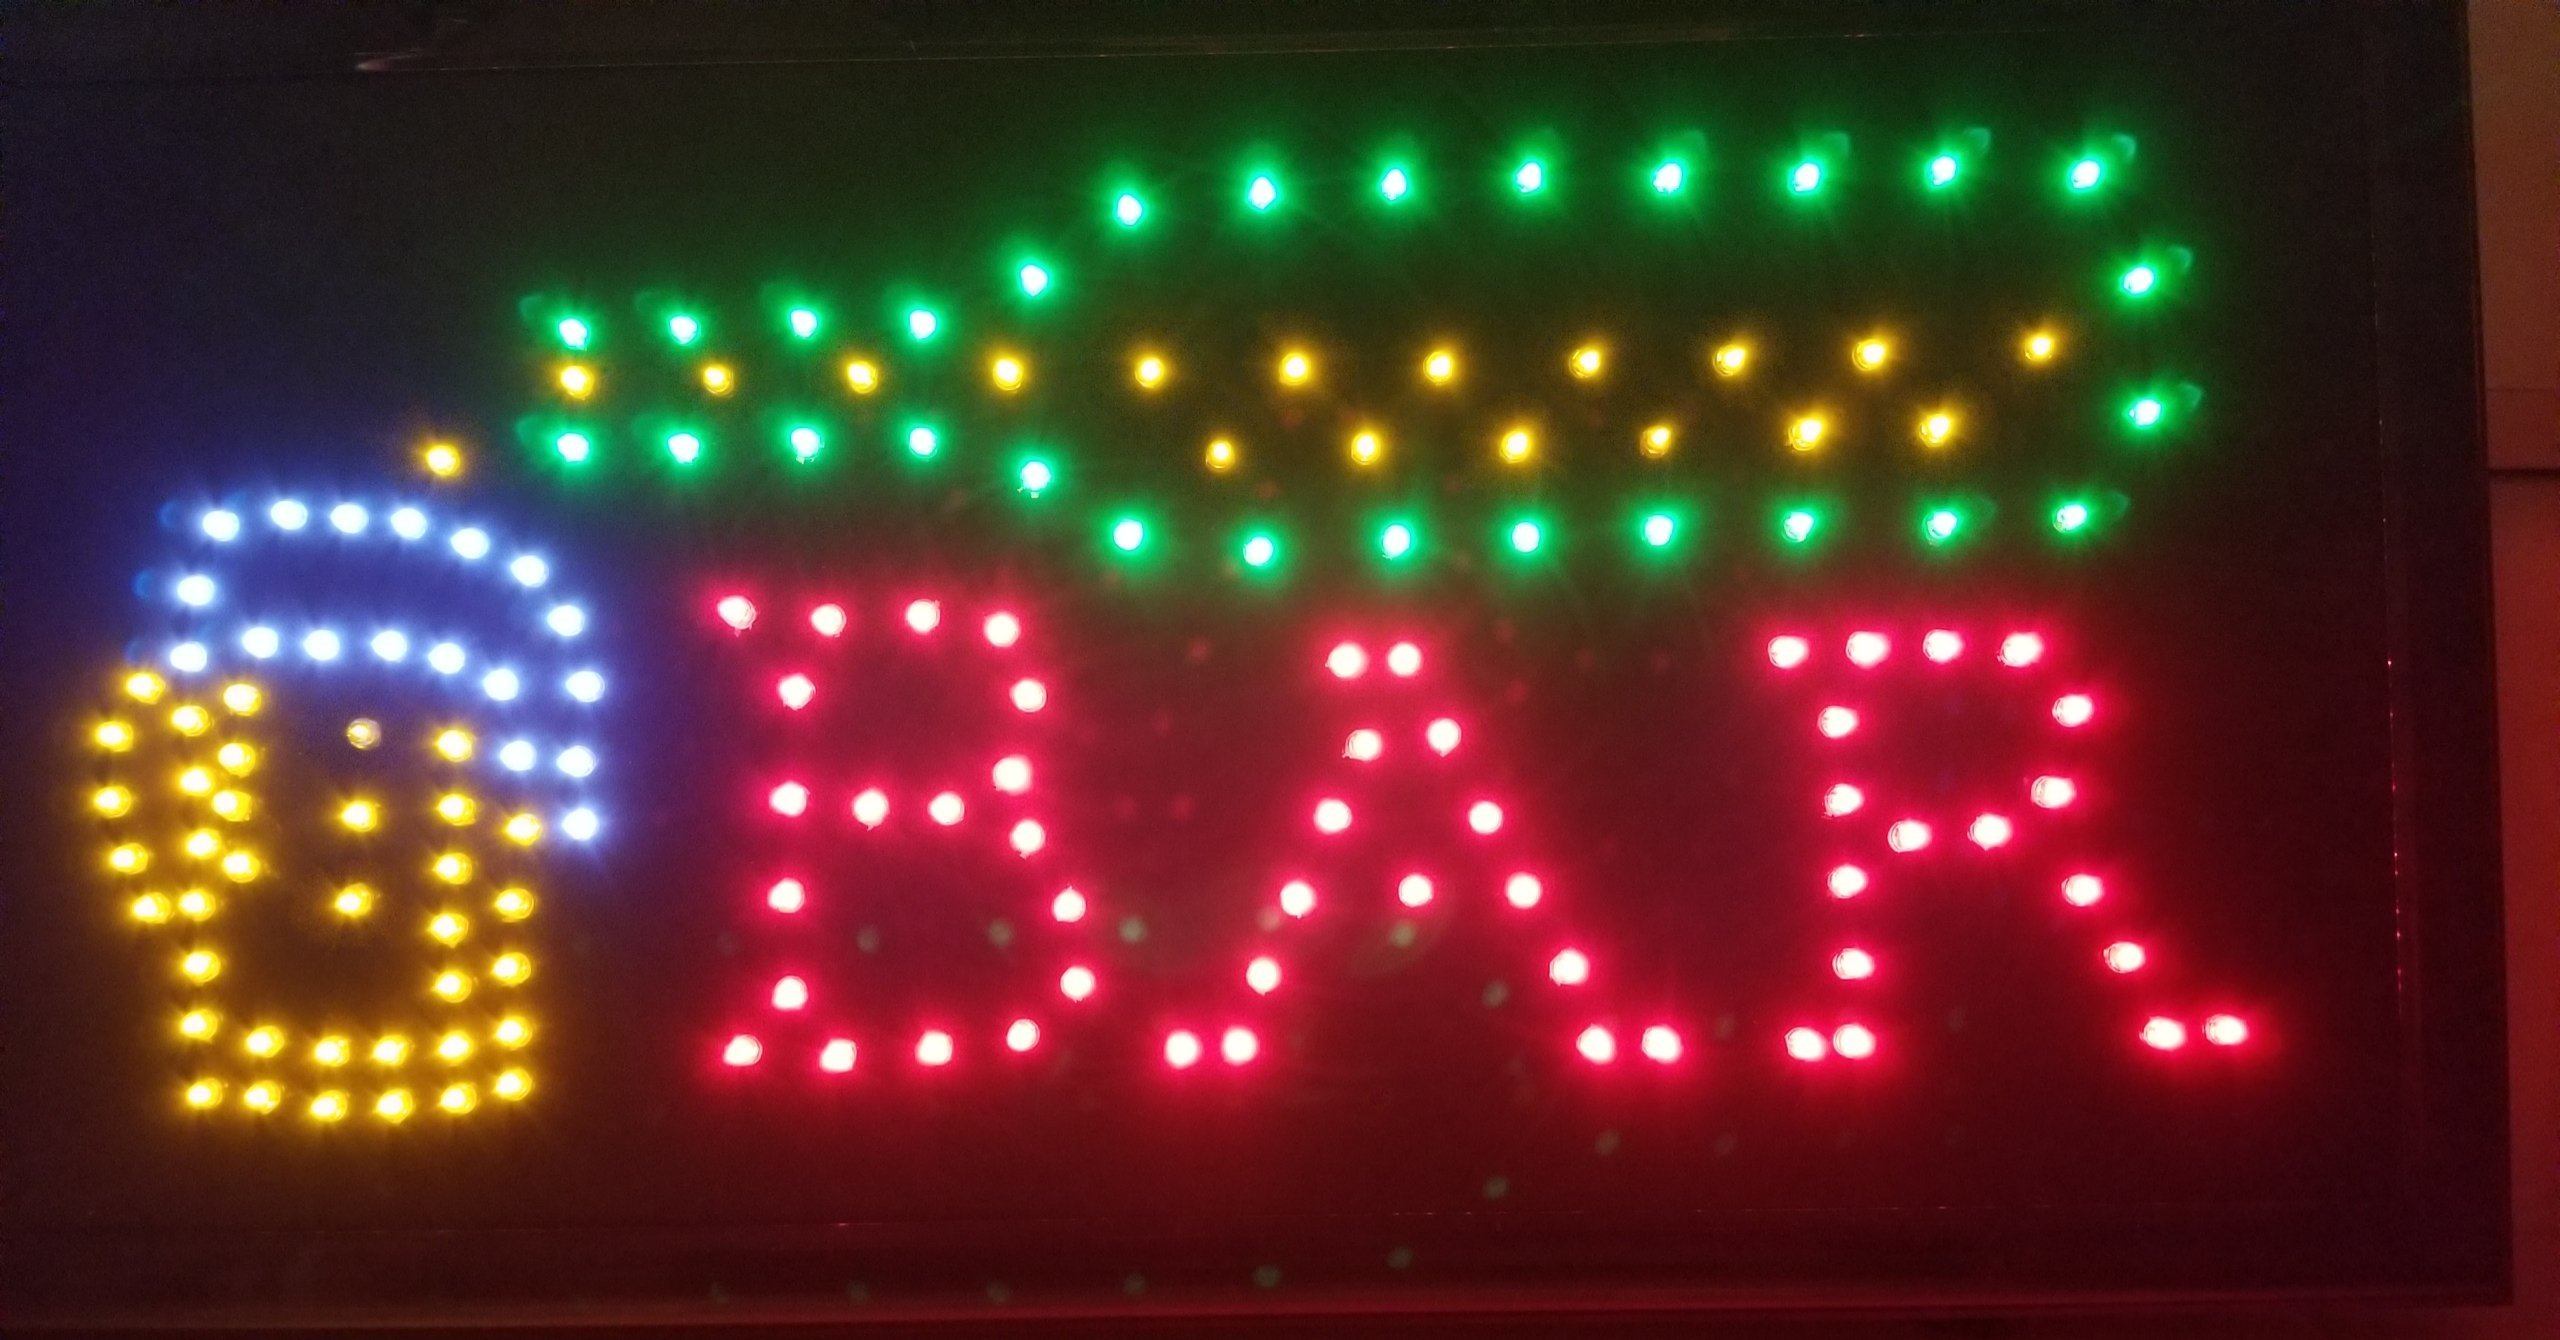 """Decorative Novelty LED Signs for Wall Decor, Man Cave, Wet Bar Accessories (19""""L x 10""""W x 1""""H, Bar)"""